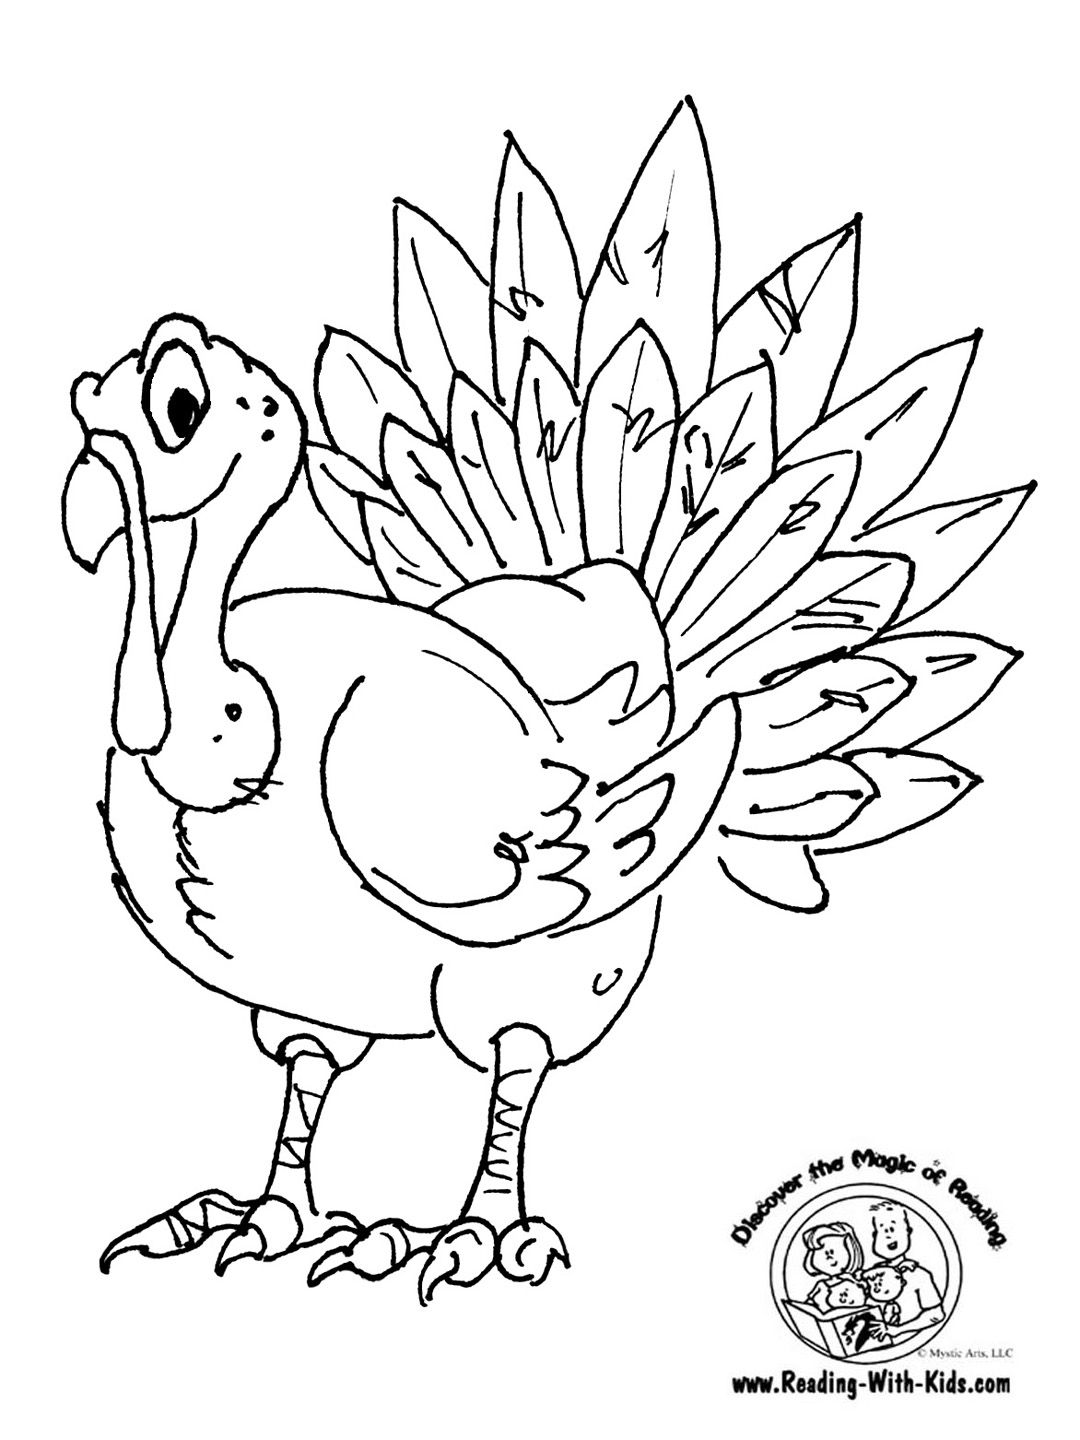 1080x1440 Thanksgiving Turkey Coloring Page Pixels